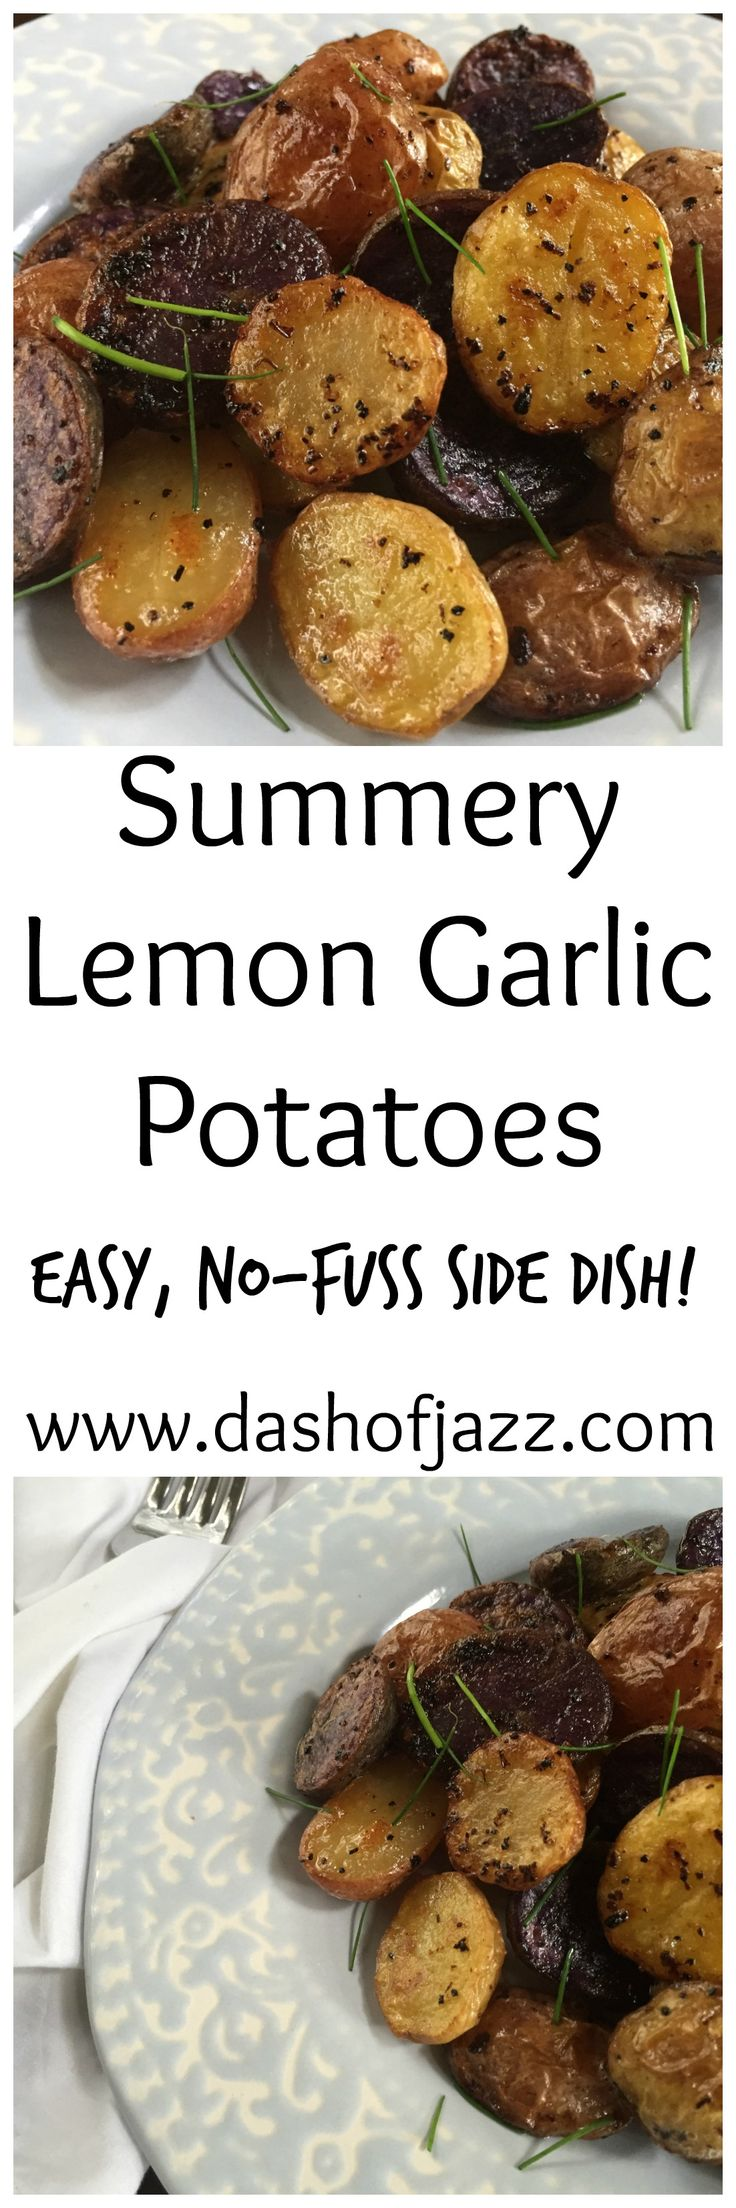 Summery lemon garlic potatoes are a bright and delicious, no-fuss side dish perfect for summer or anytime! by Dash of Jazz